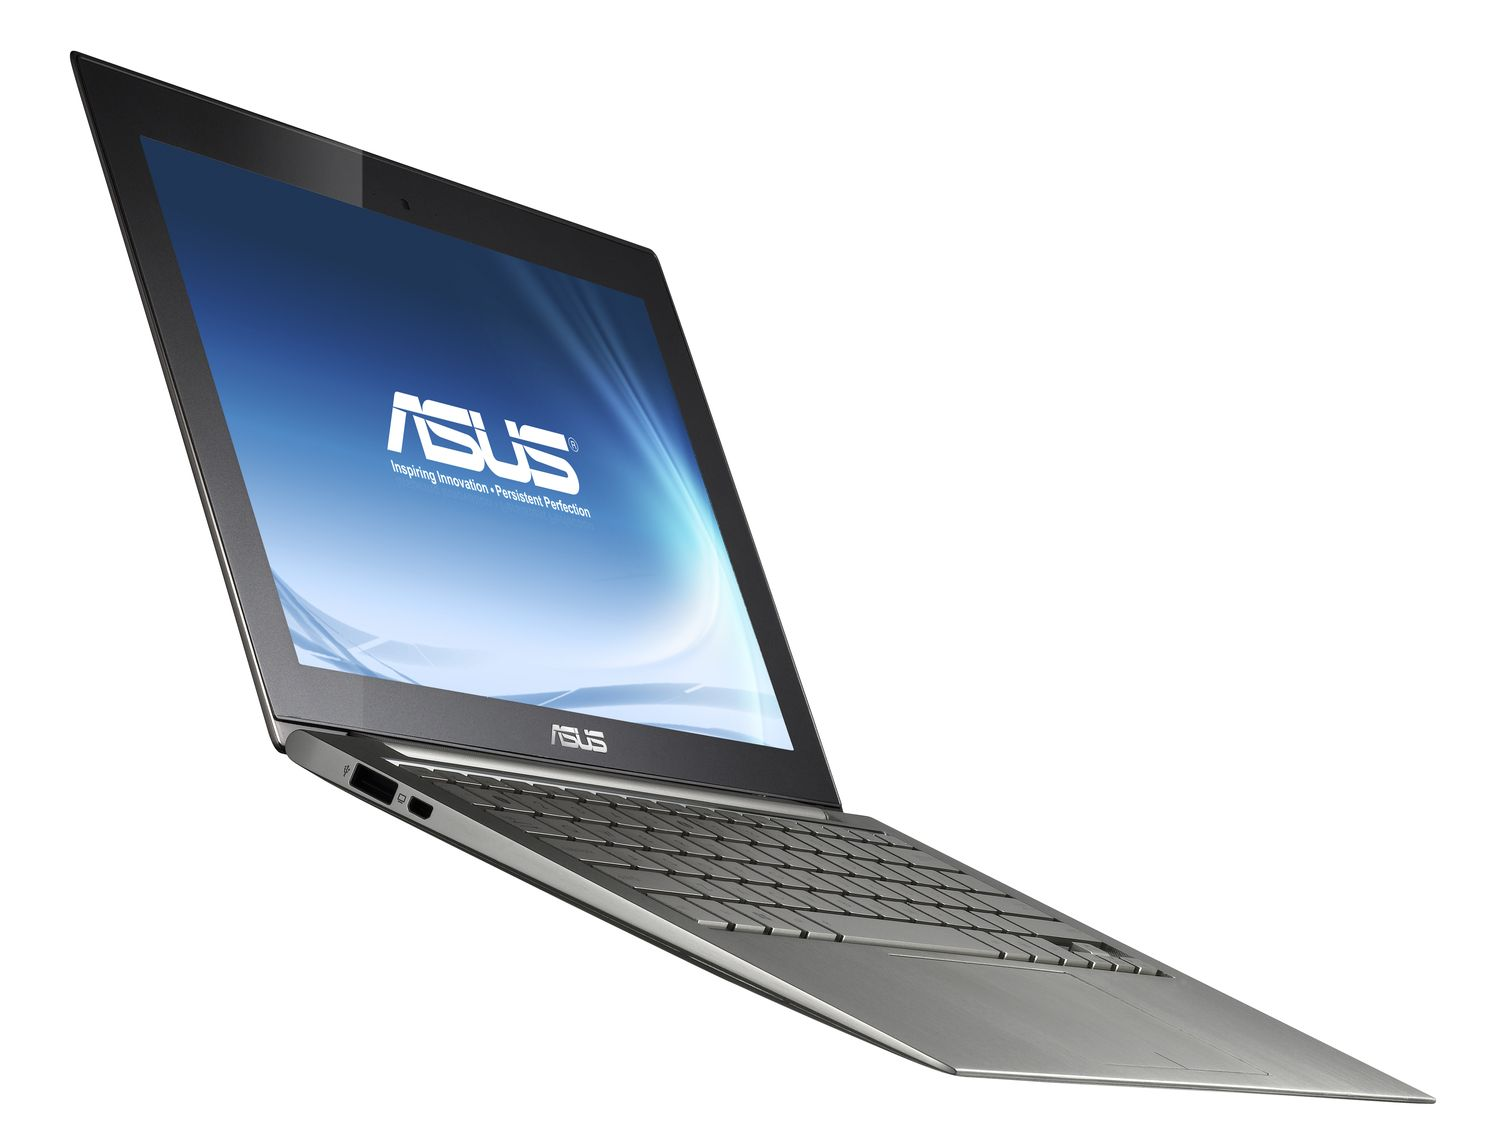 ASUS UX32VD NOTEBOOK DRIVER PC